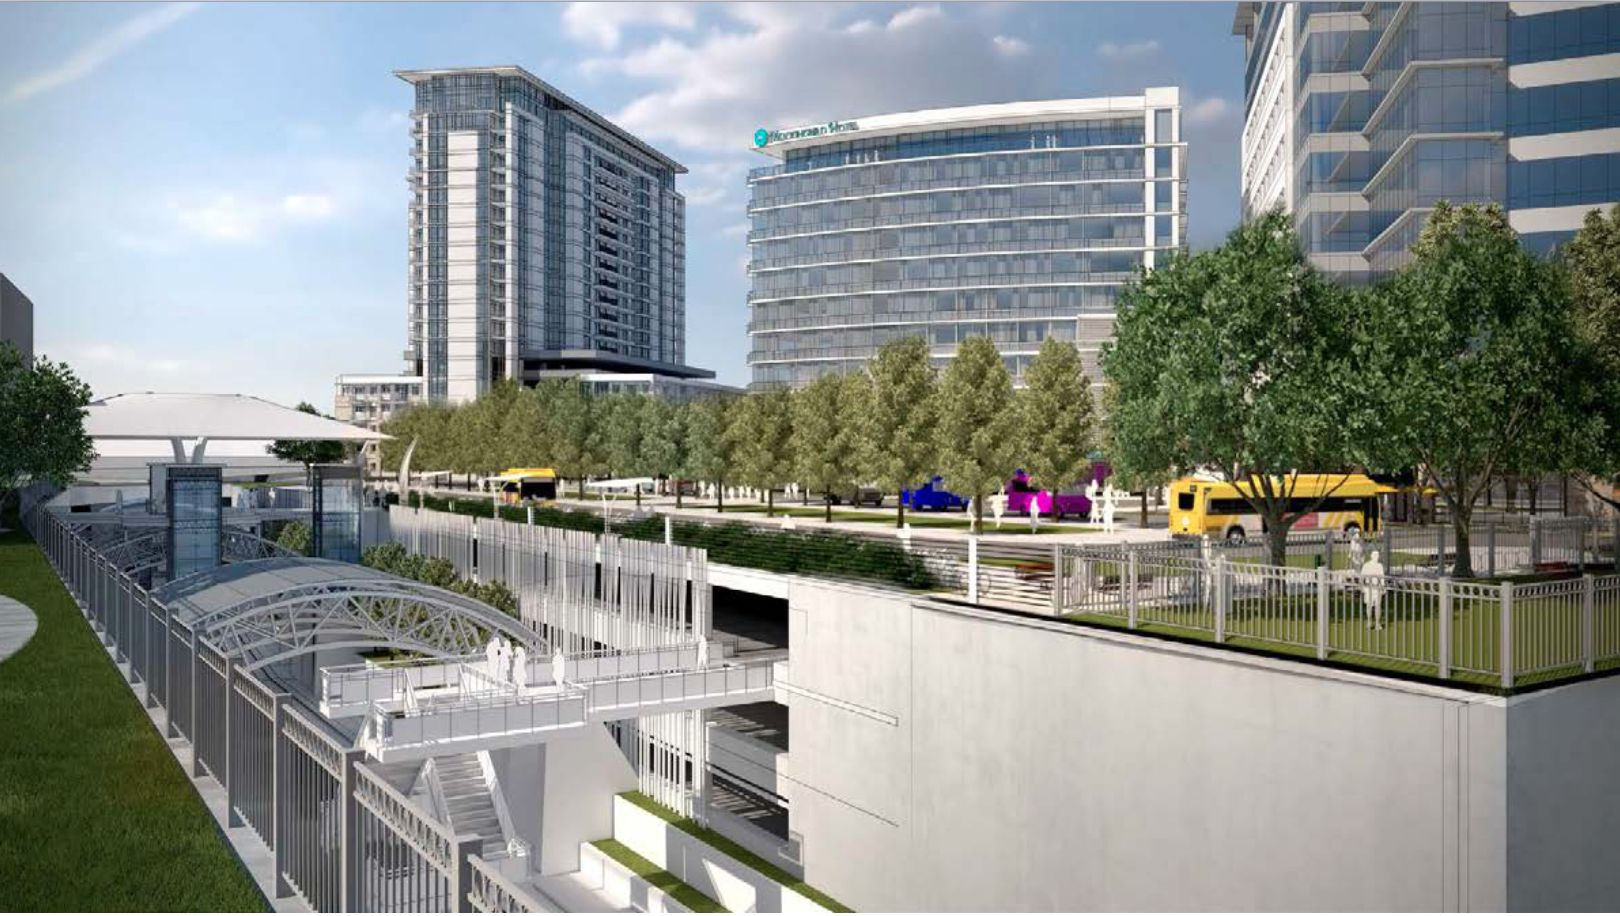 A series of residential, office and hotel towers would be built on top of underground parking at DART's Mockingbird Station.